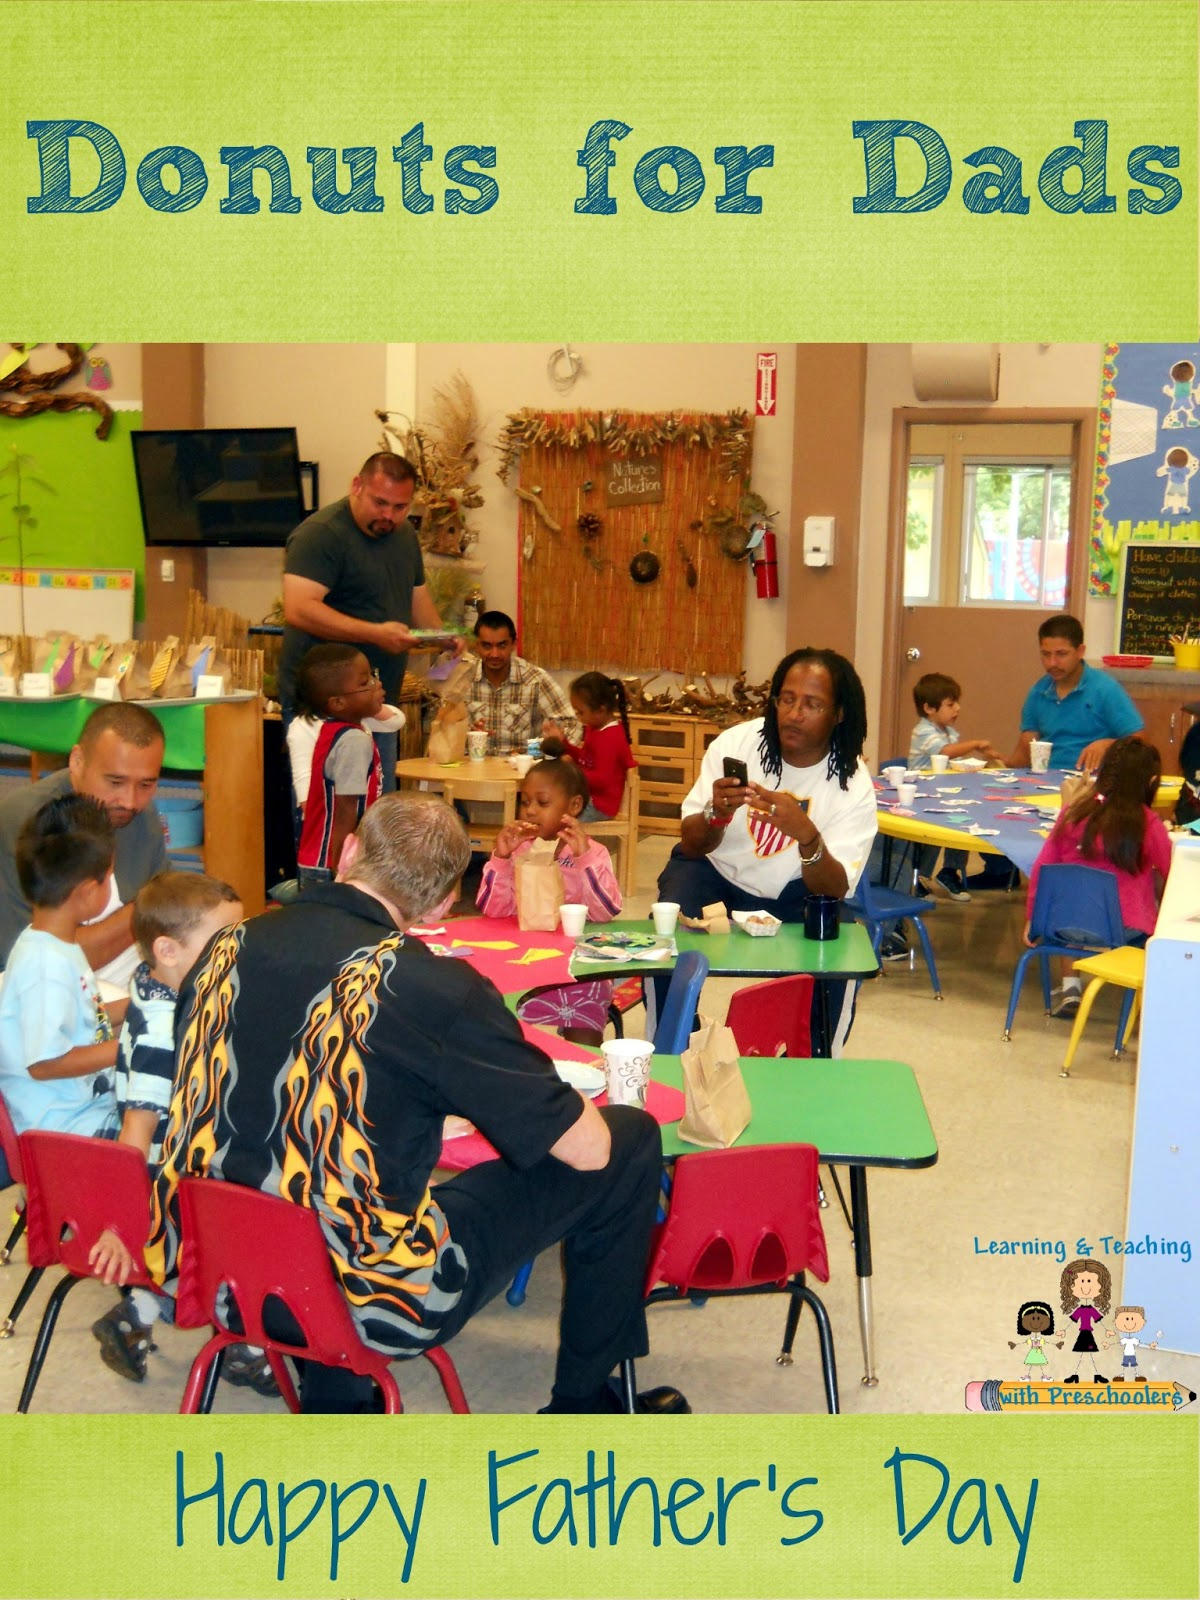 Learning And Teaching With Preschoolers Father S Day